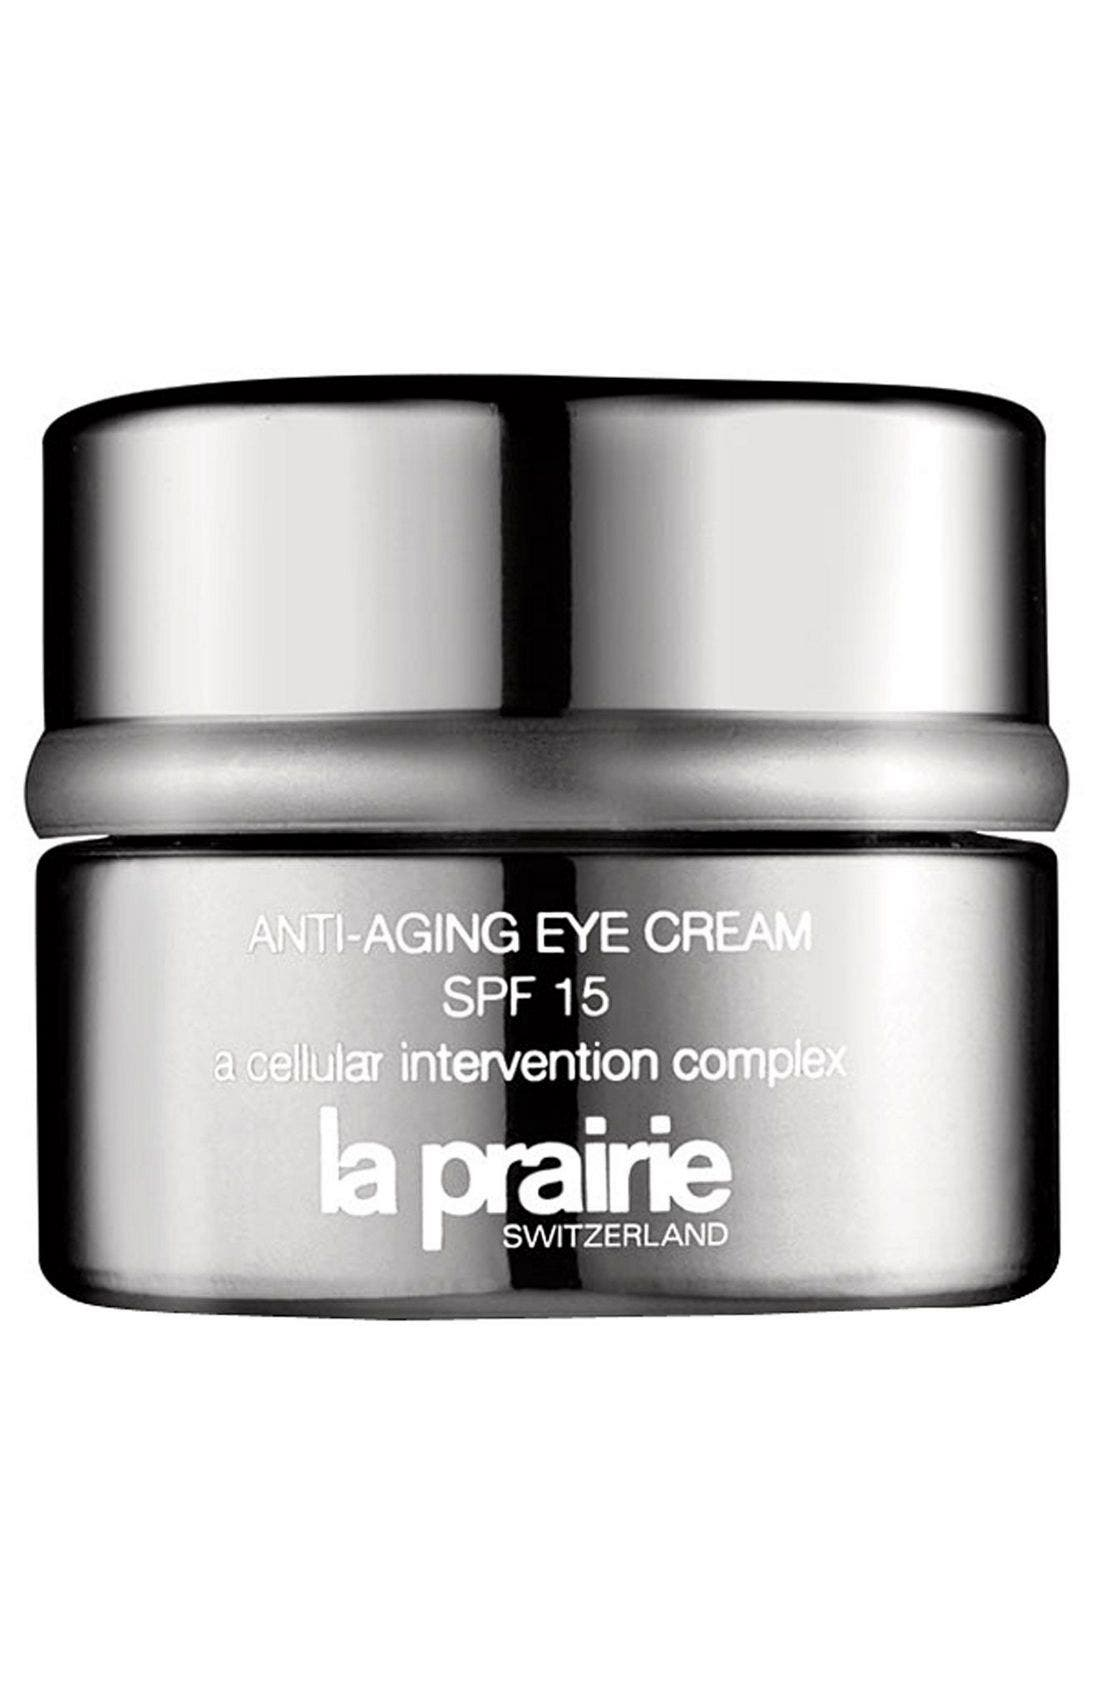 La Prairie Anti-Aging Eye Cream Sunscreen Broad Spectrum SPF 15